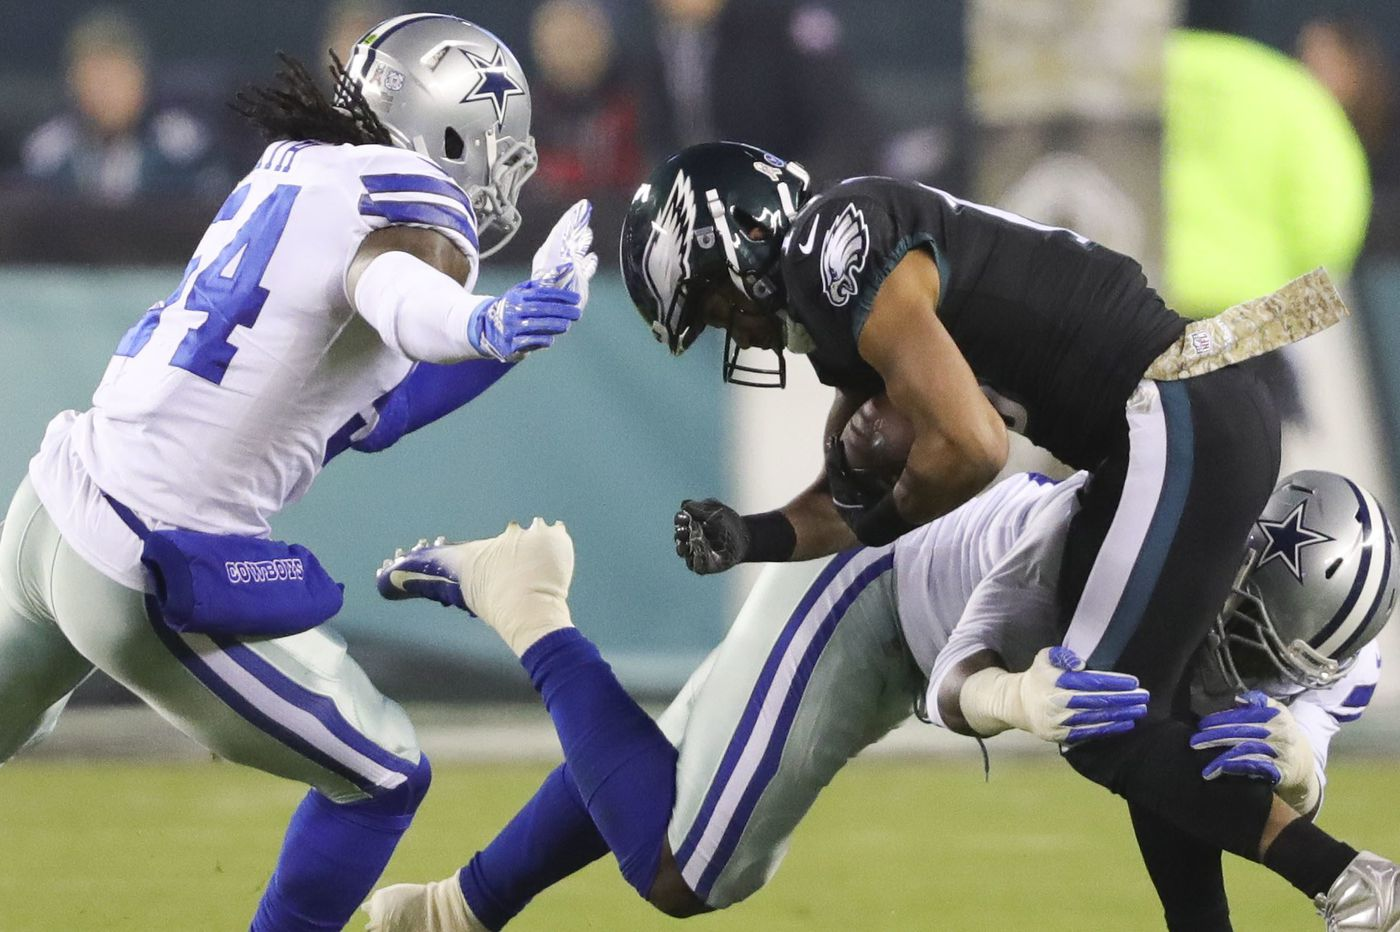 Eagles' Lane Johnson couldn't get his knee ready after all; Golden Tate returns punts